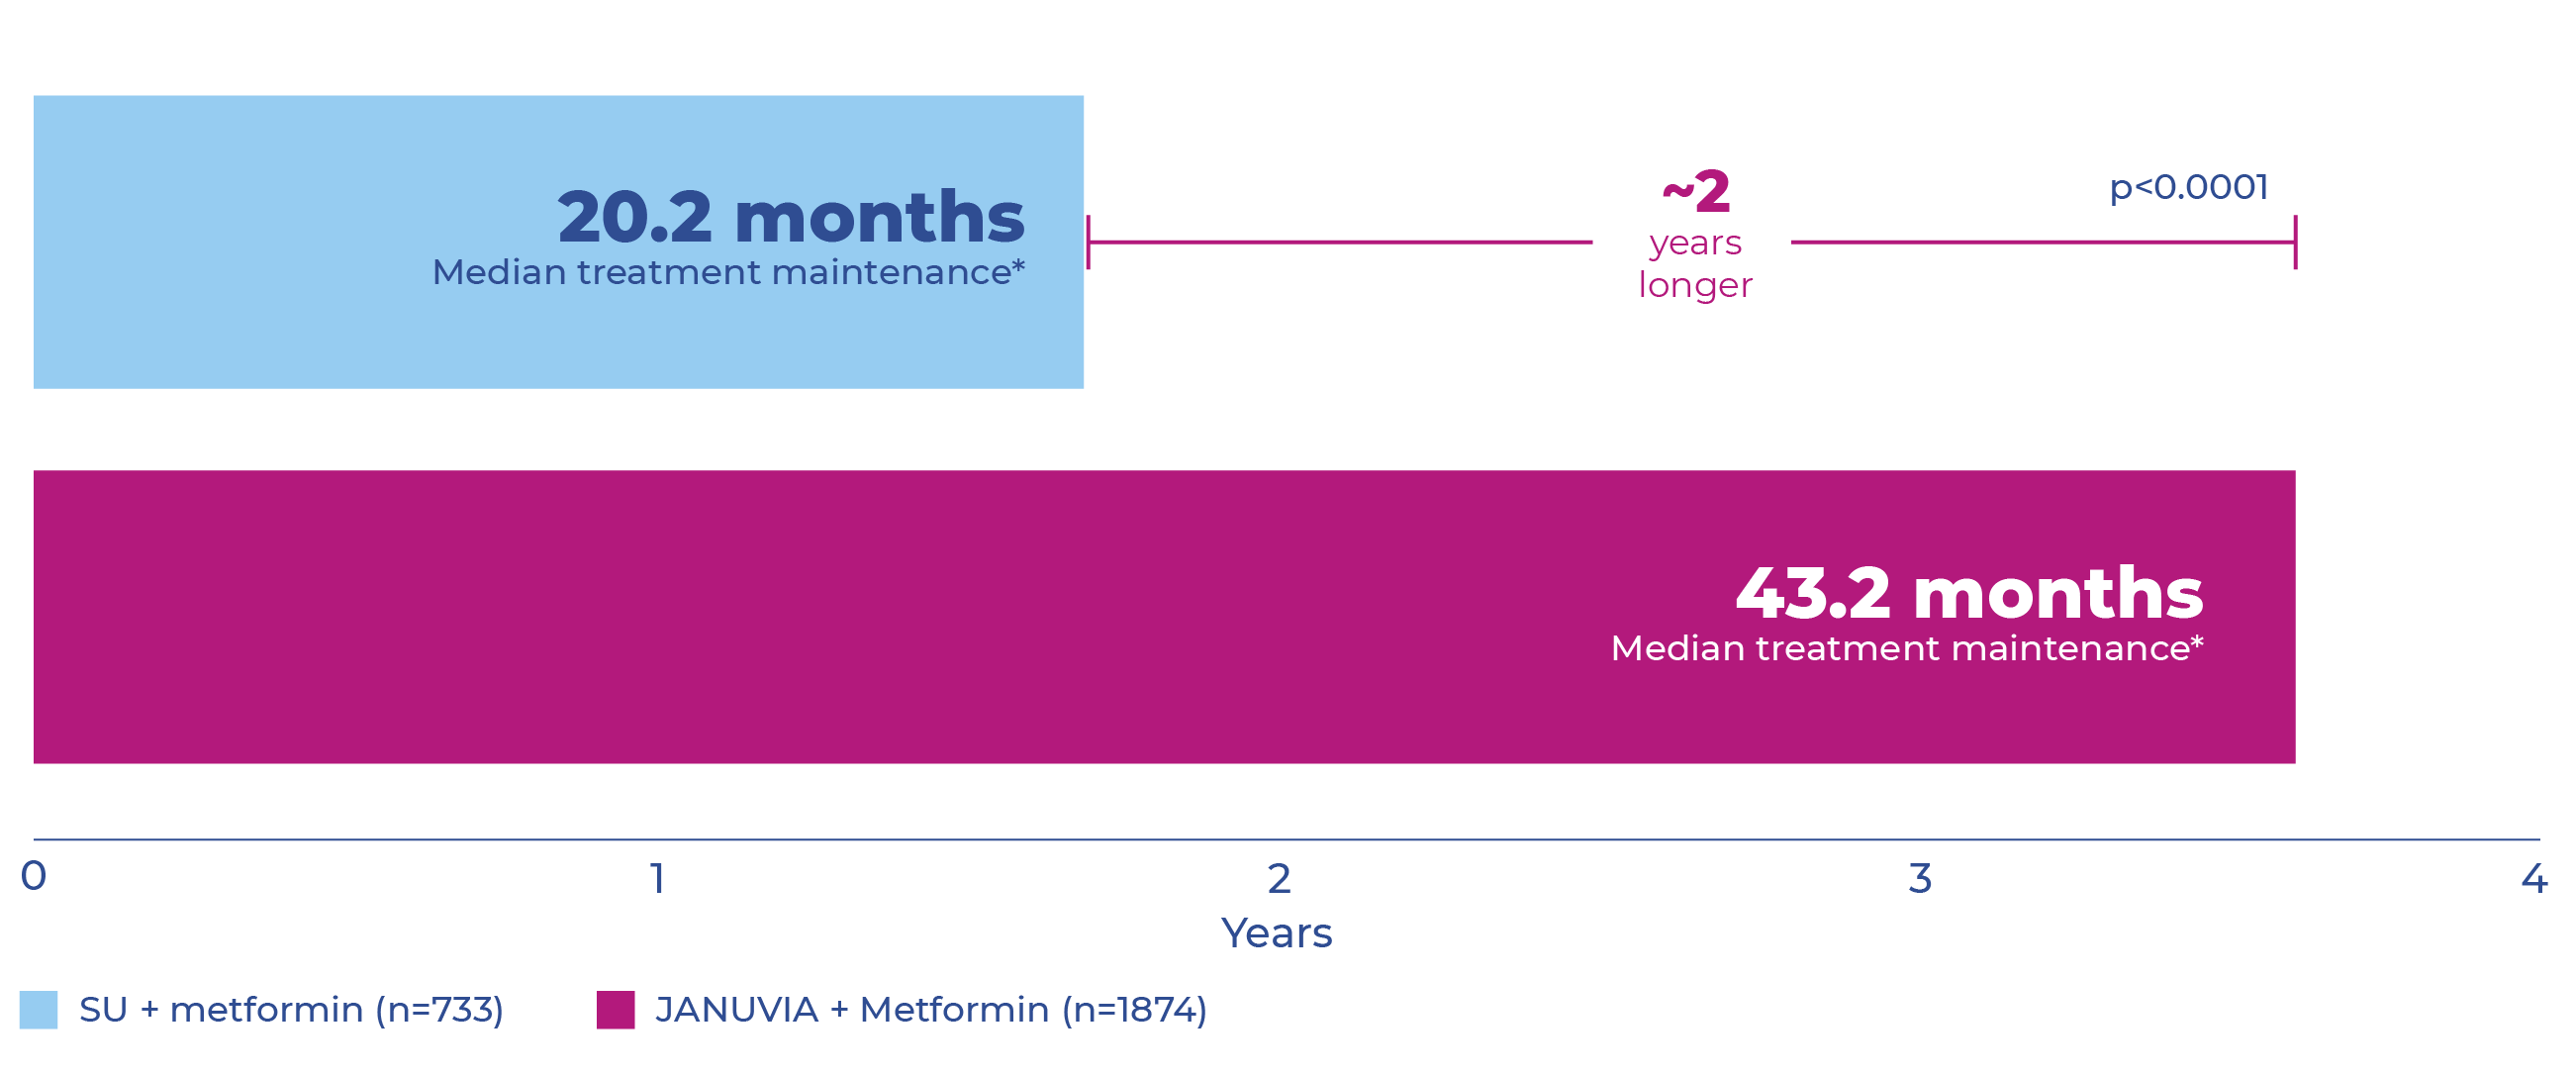 Graph showing median time of treatment maintenance for JANUVIA plus metformin compared with SU plus metformin